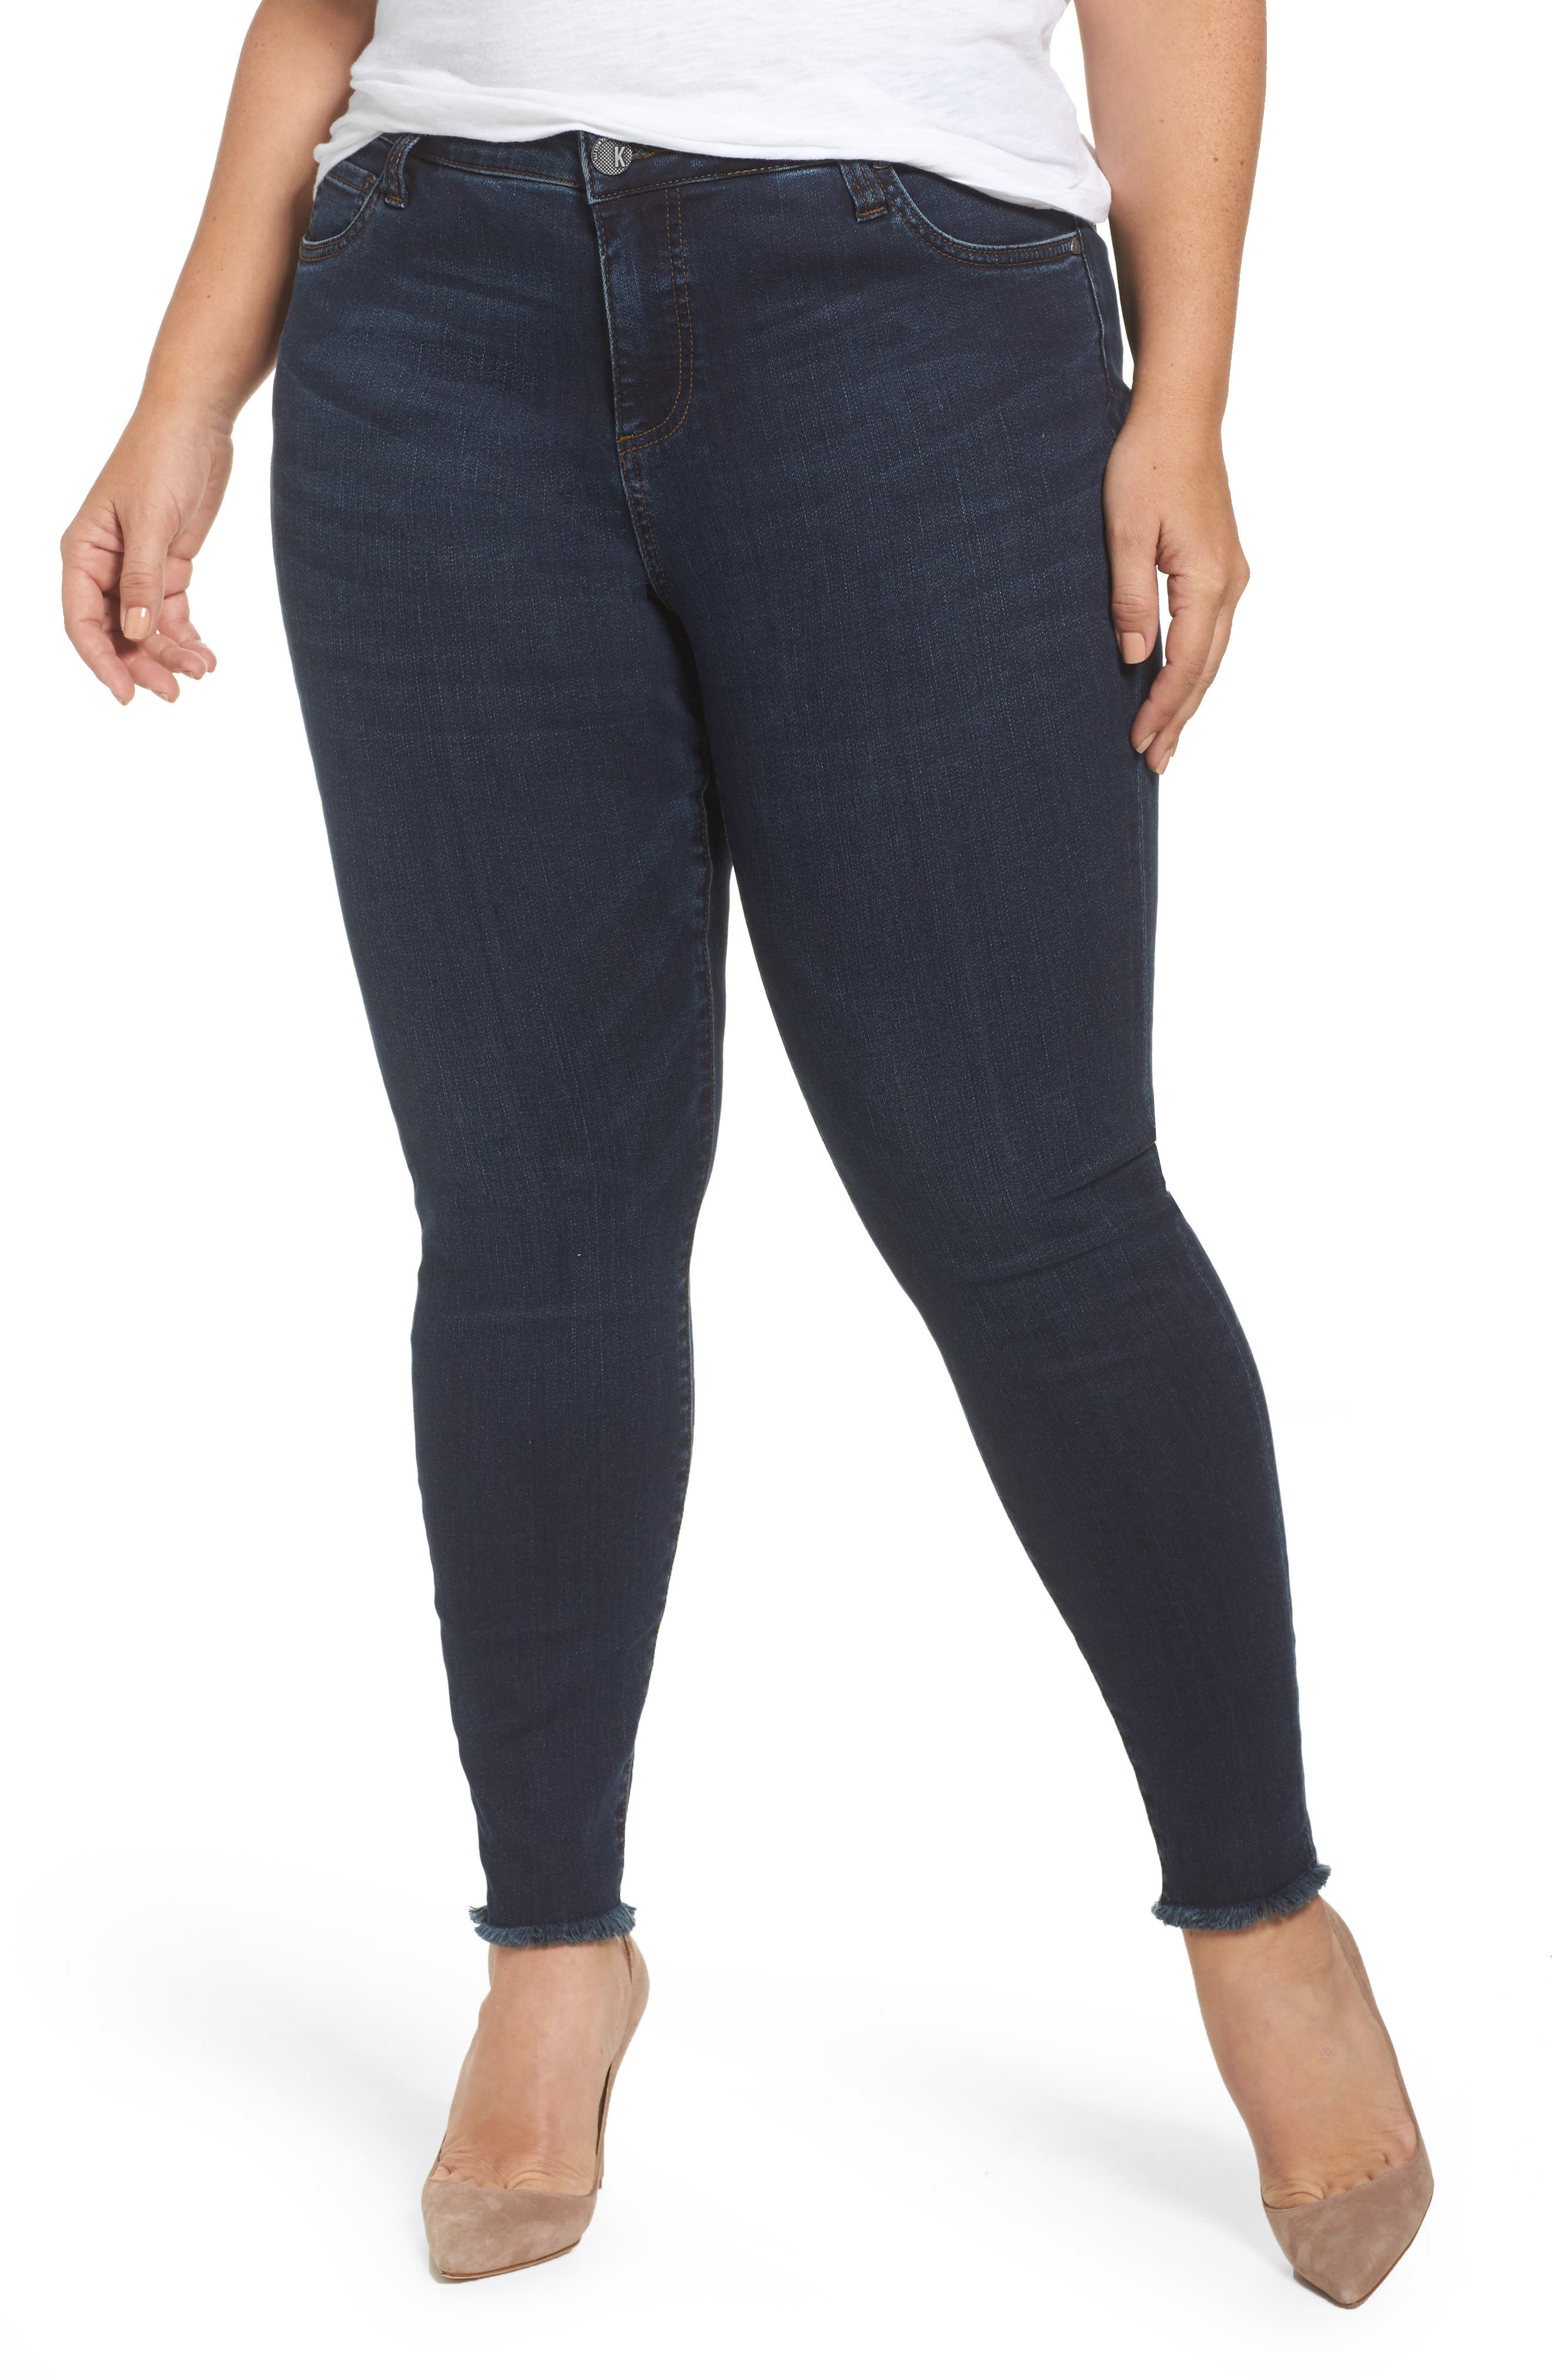 Main Image - KUT from the Kloth Donna Frayed Skinny Crop Jeans (Certitude) (Plus Size)